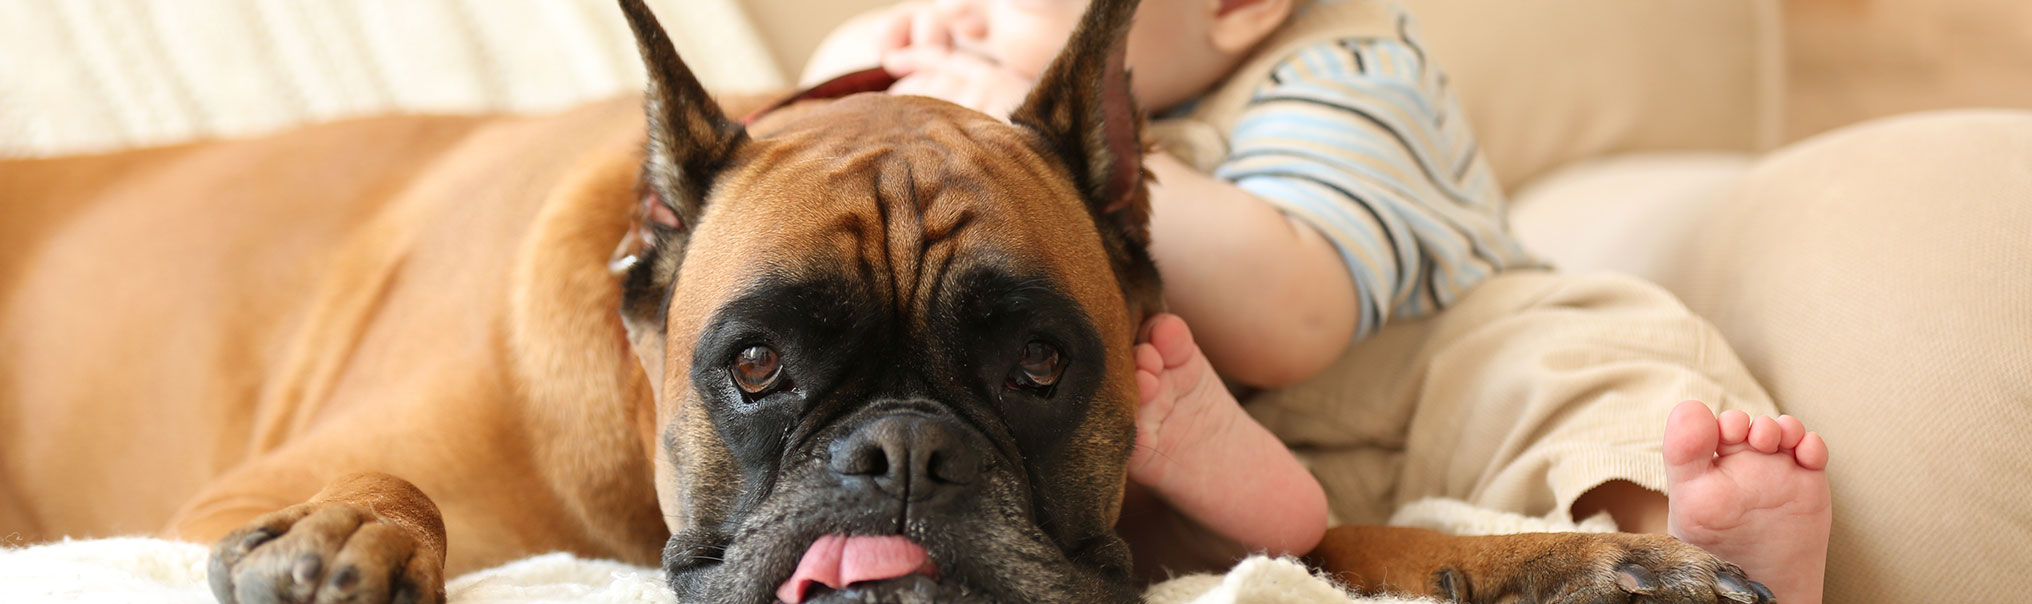 Dog lying down next to a baby